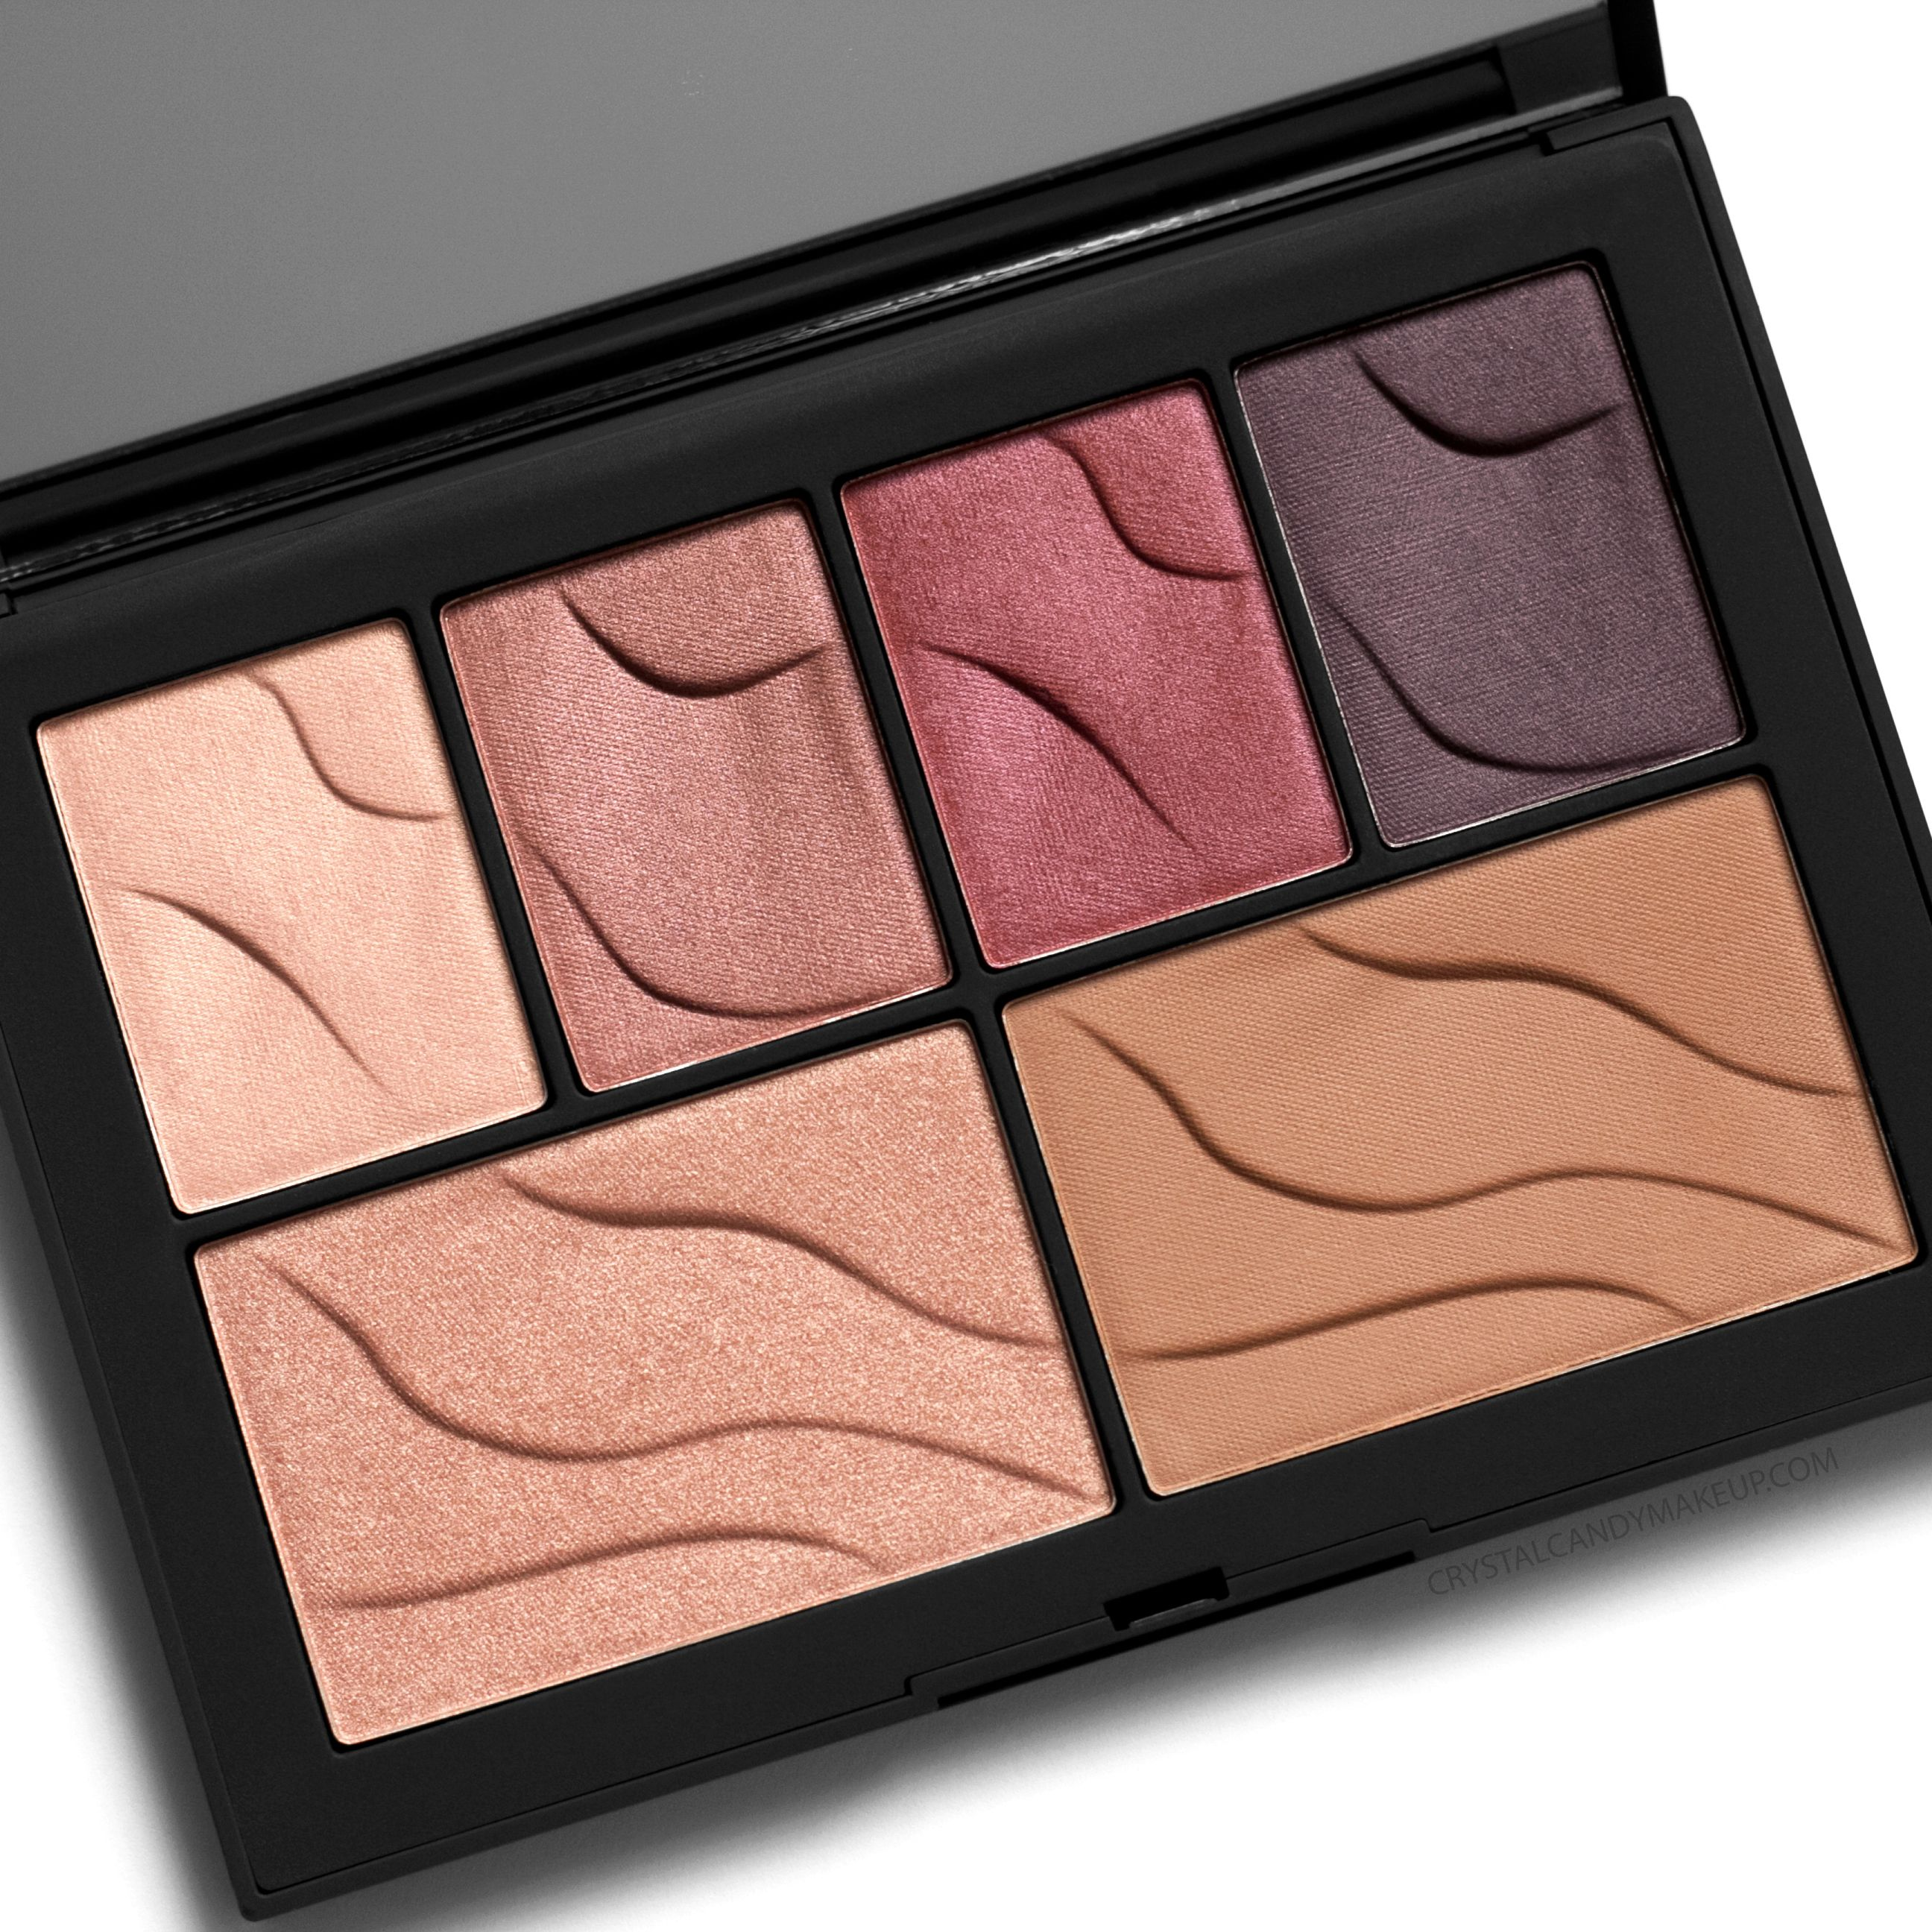 NARS Hot Nights Face Palette Review and Swatches